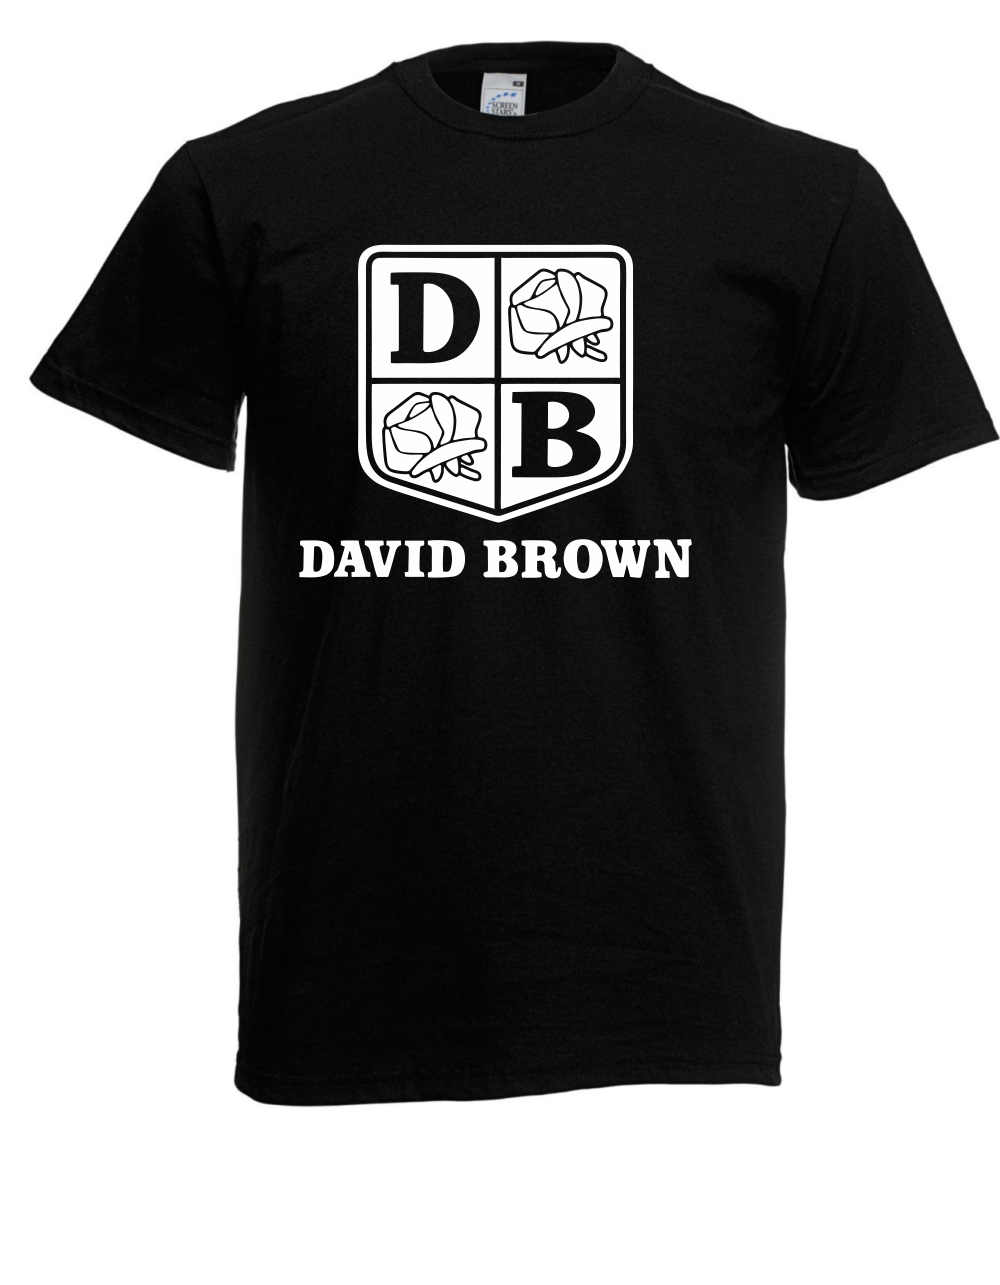 2018 Streetwear Short Sleeve Tees Herren T-Shirt David Brown I Traktor I Spruche I Fun I Lustig bis 5XL Hipster O-neck cool tops